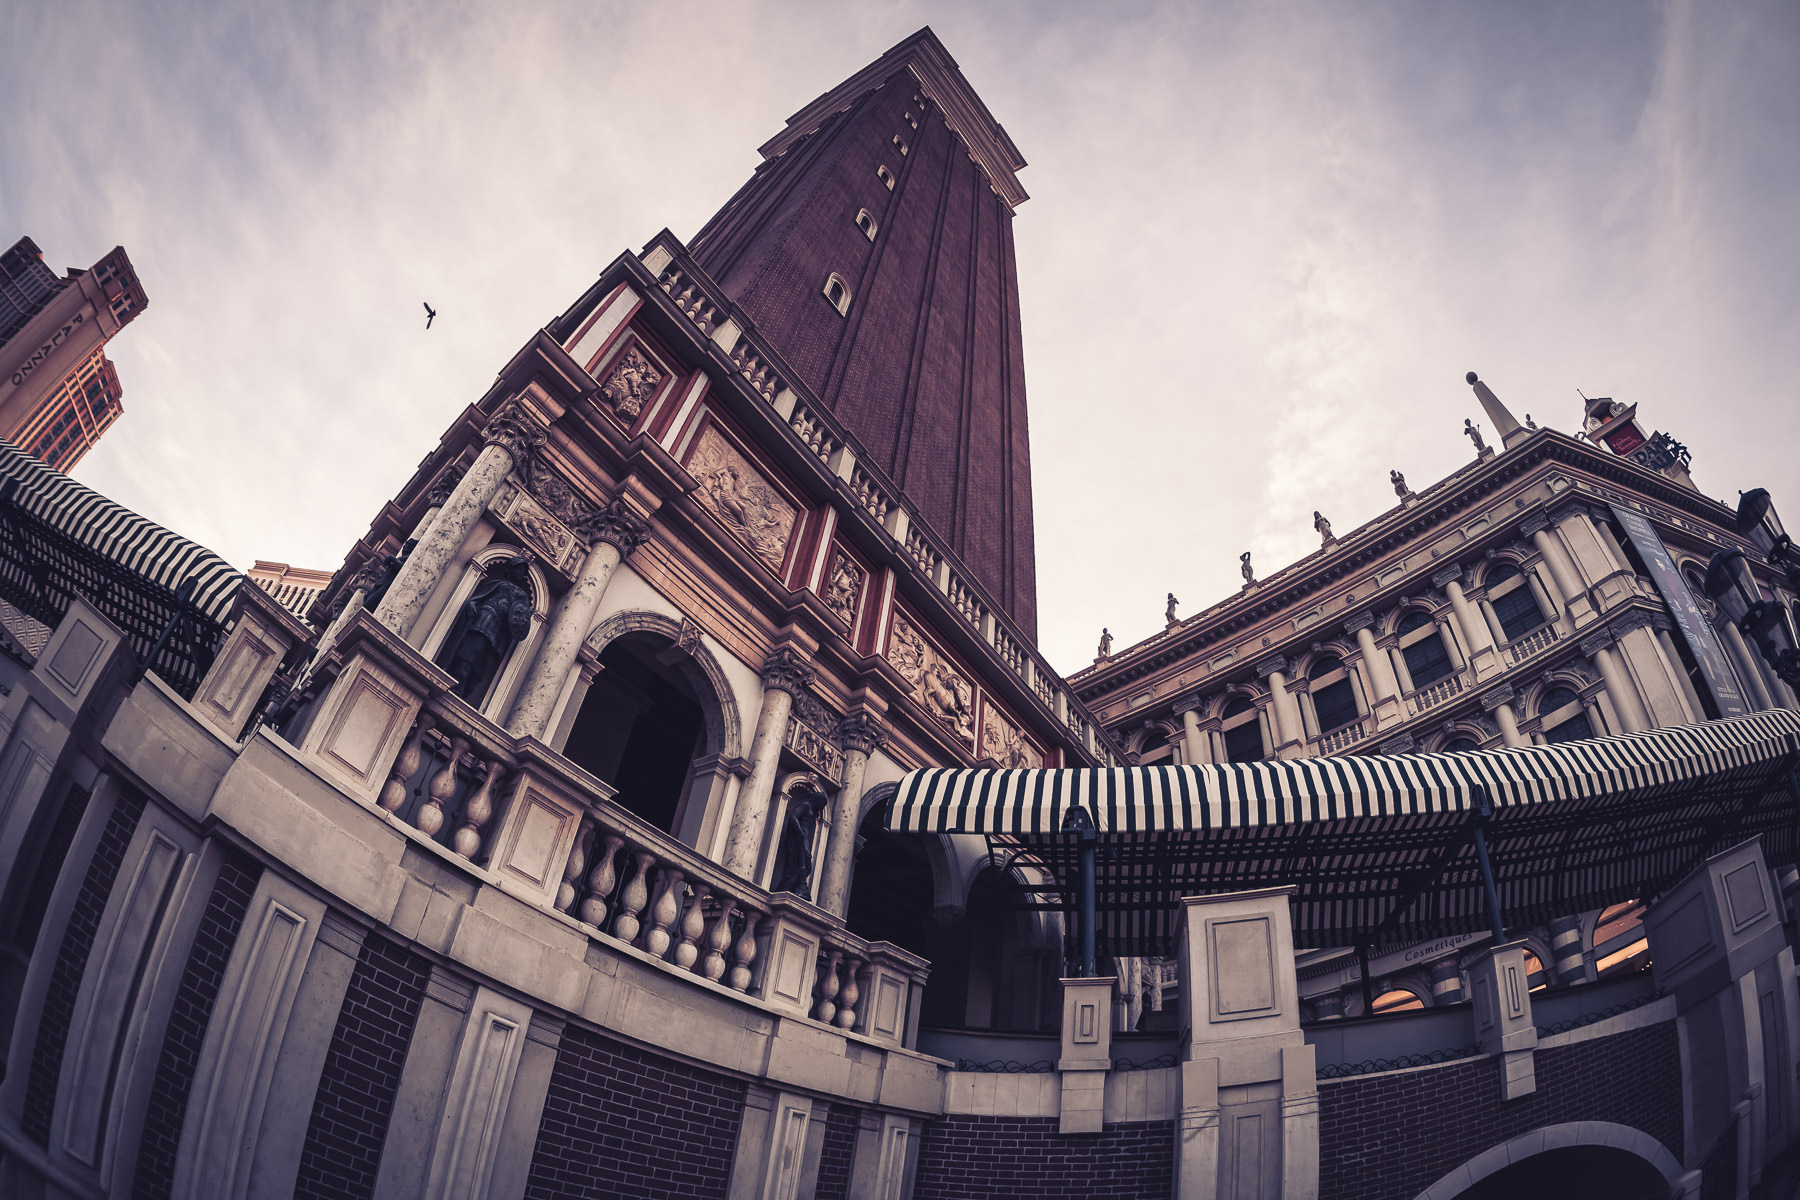 The reproduction of Venice's Campanile di San Marco at The Venetian, Las Vegas.